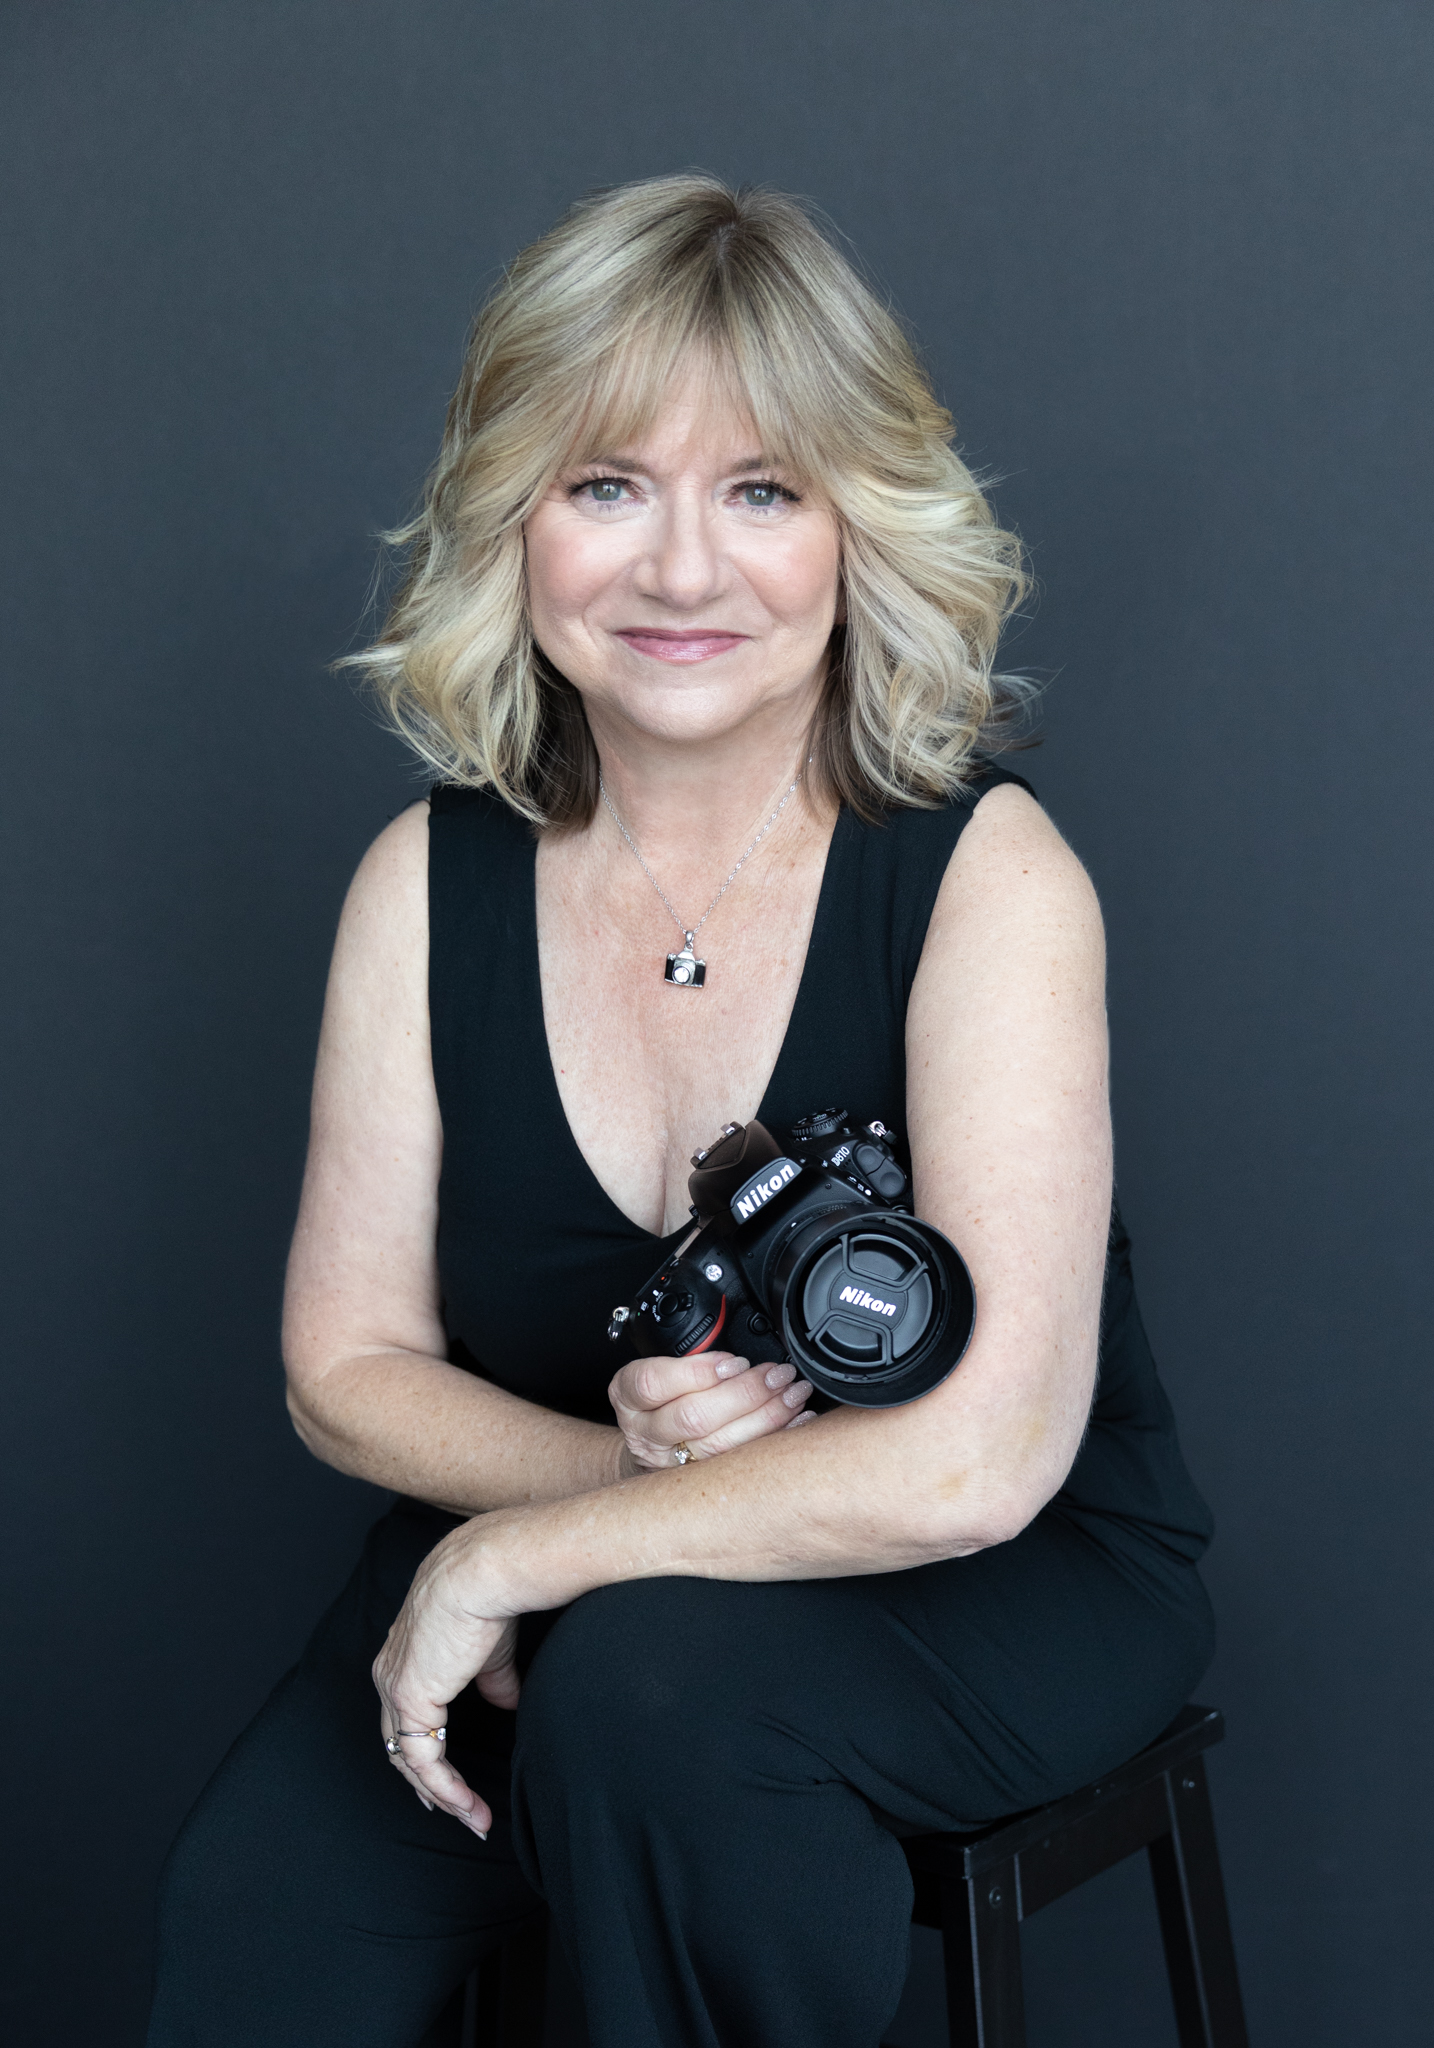 Woman photographer seated wearing black and holding a camera.